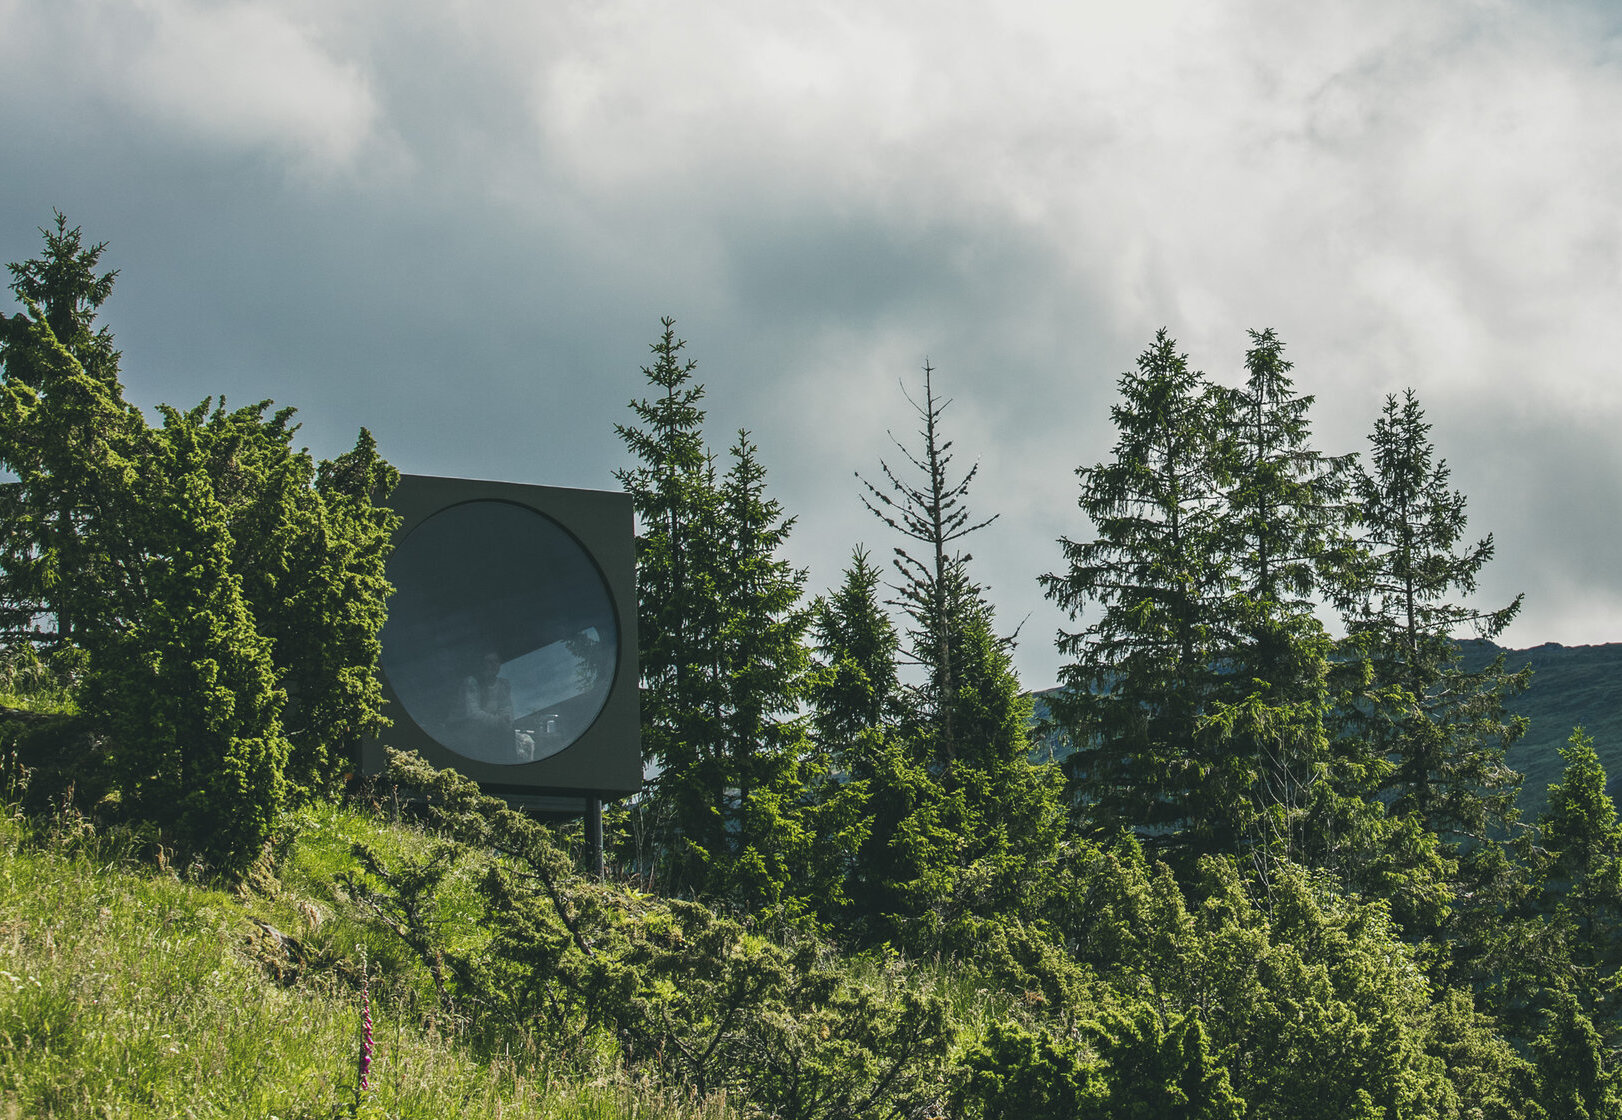 A black box with a round window sits among trees.